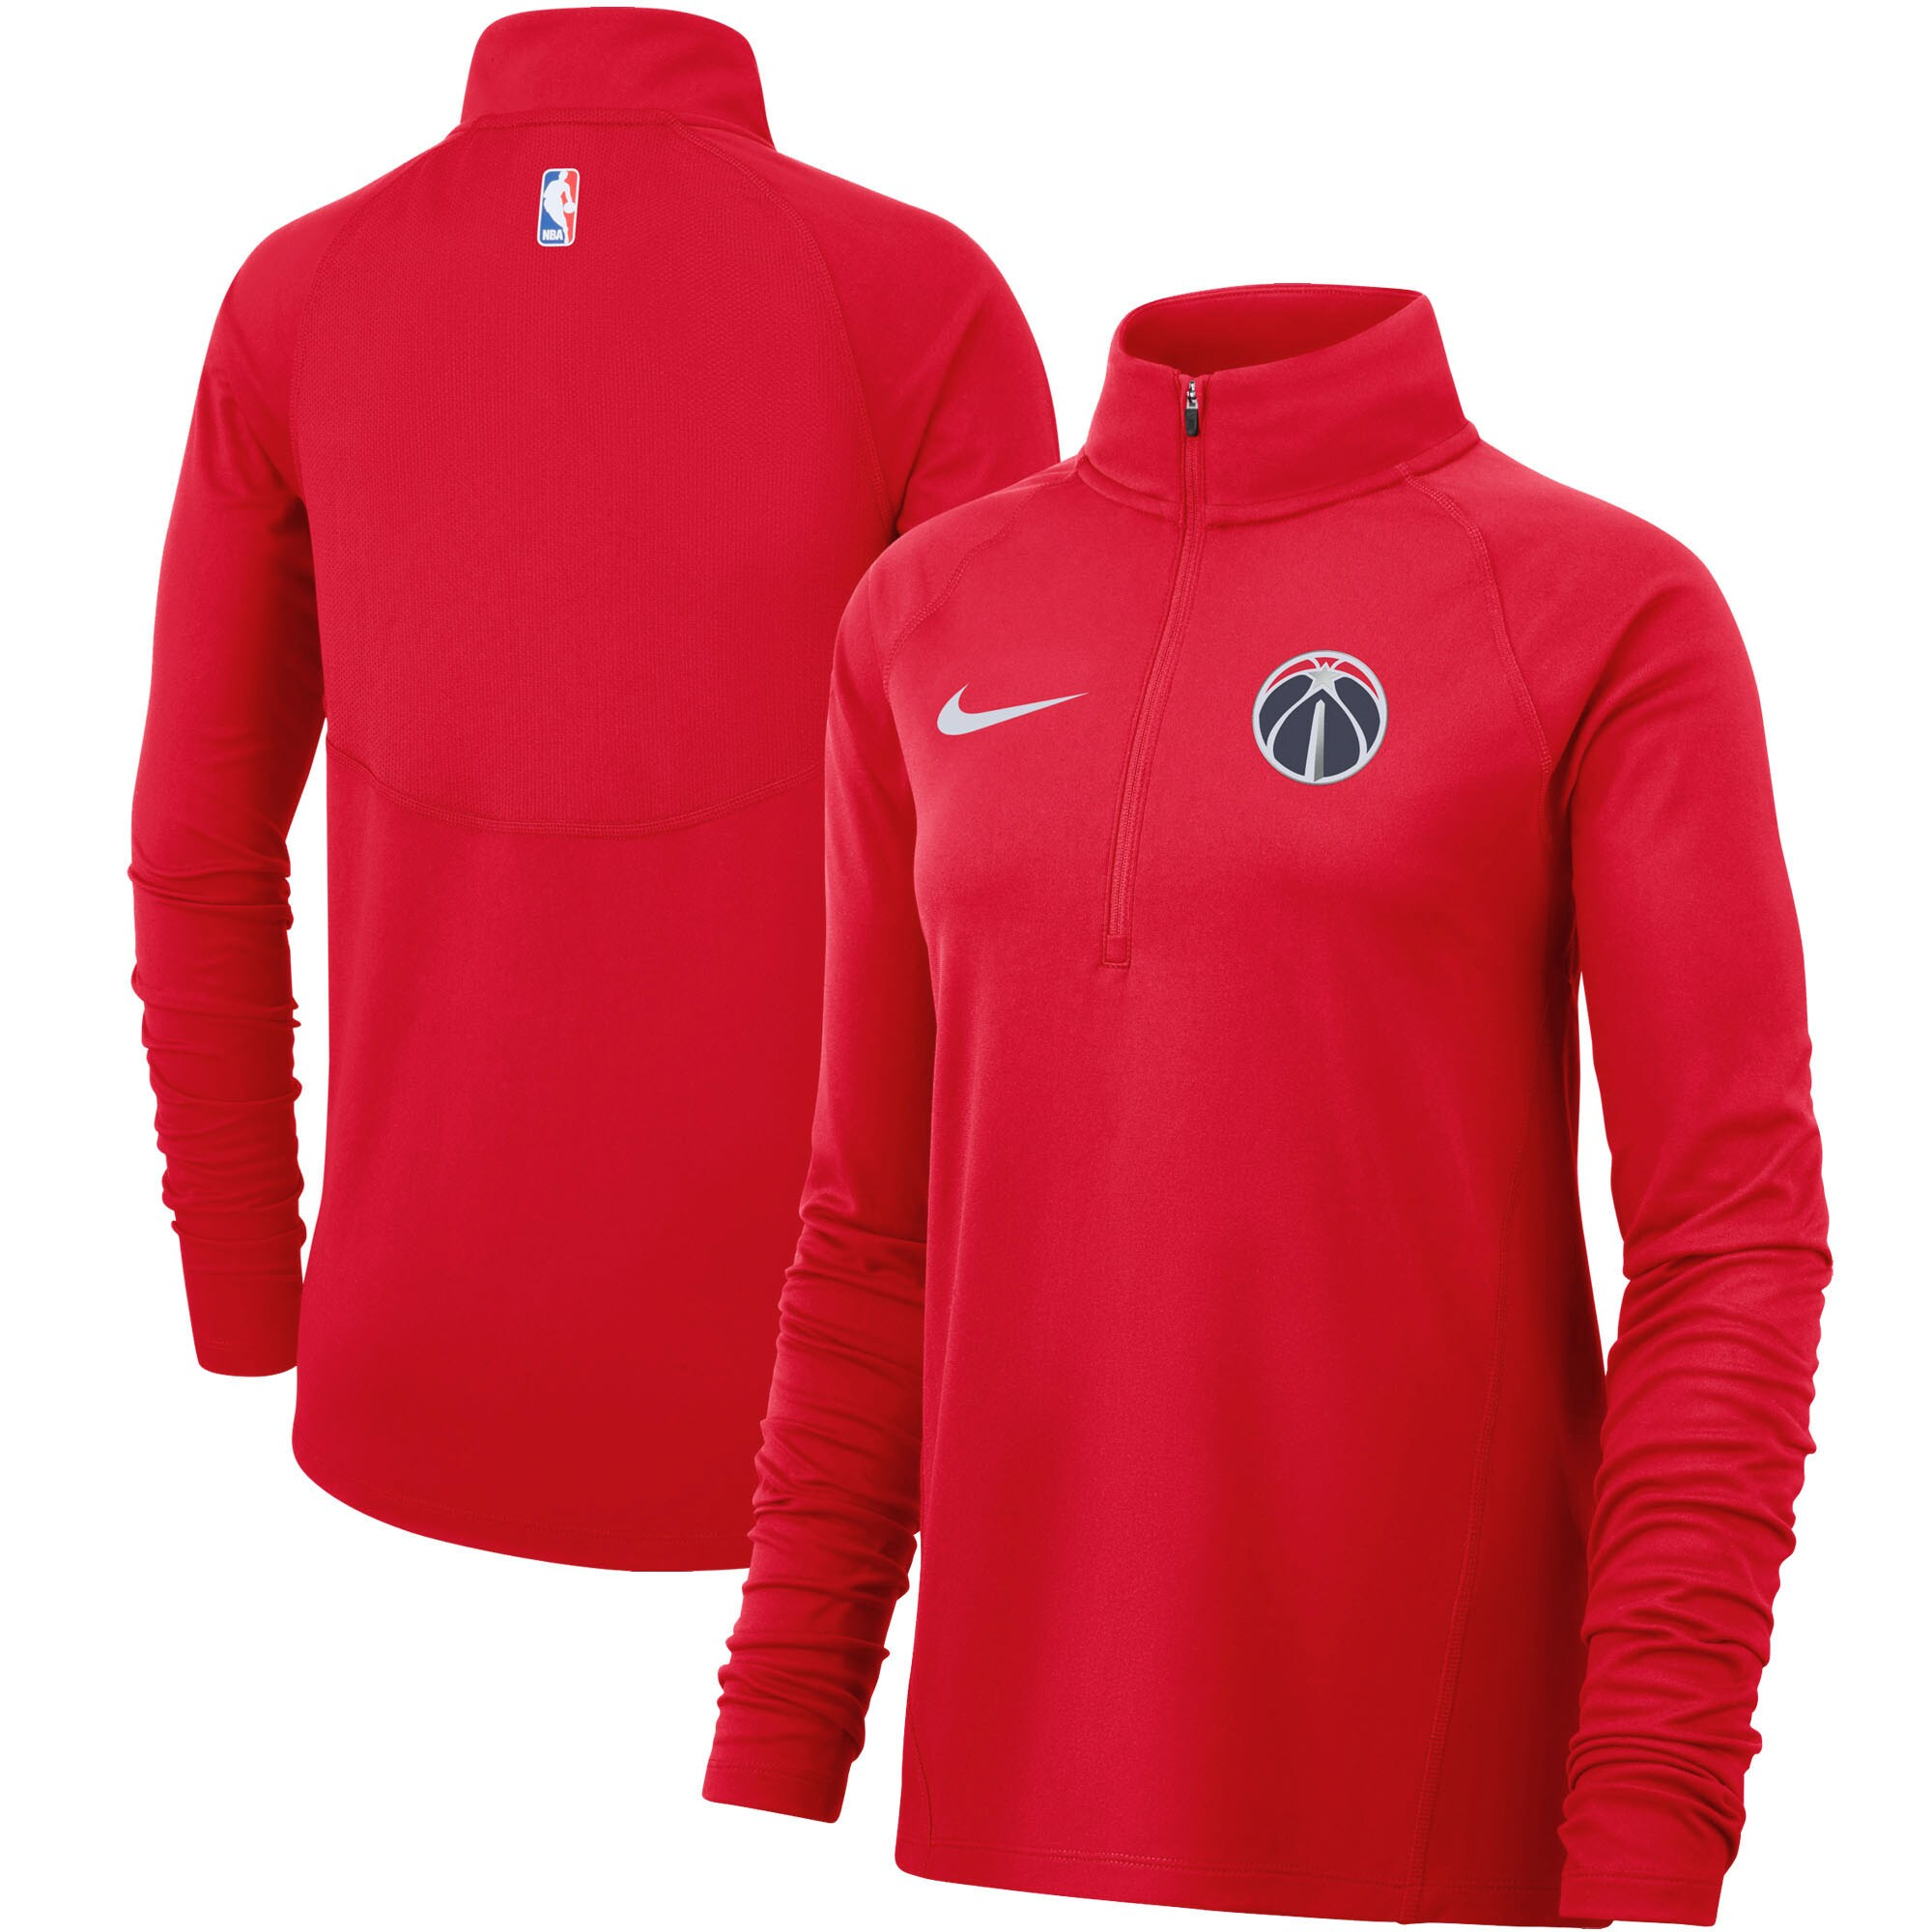 Washington Wizards Nike Women's Element Performance Raglan Sleeve Half-Zip Pullover Jacket - Red